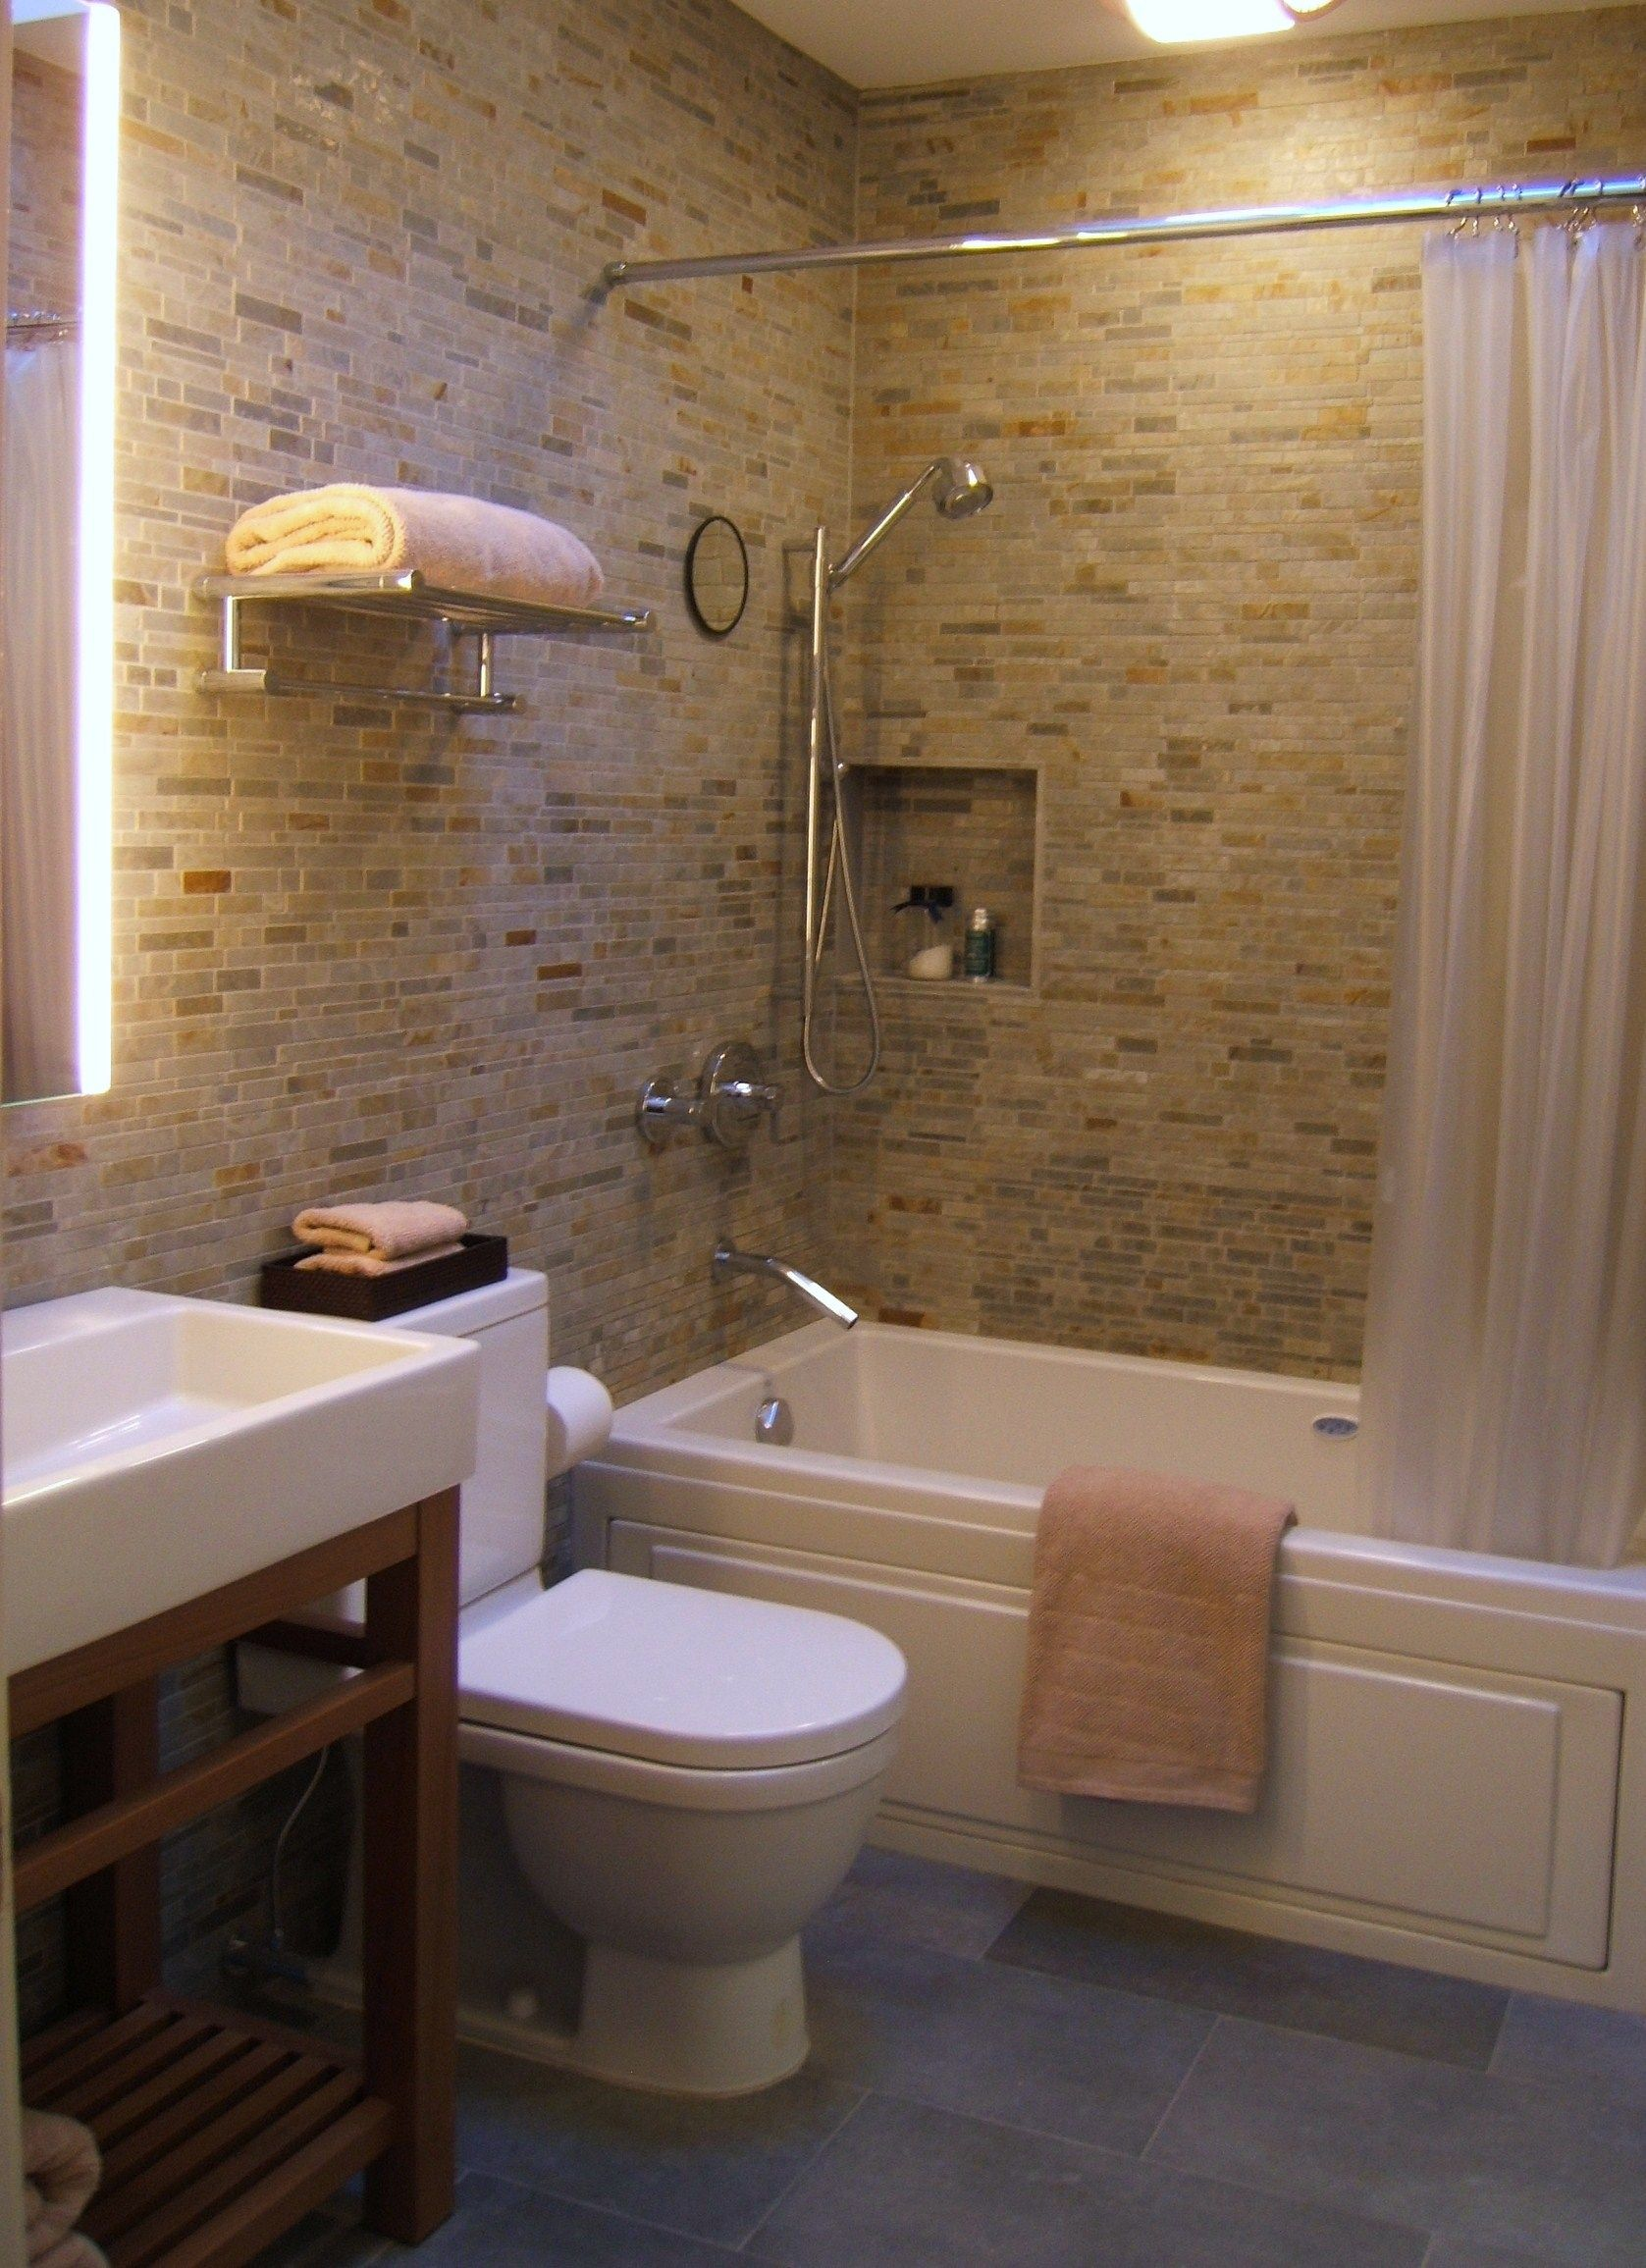 Small bathroom designs south africa small bath for Small bathroom images